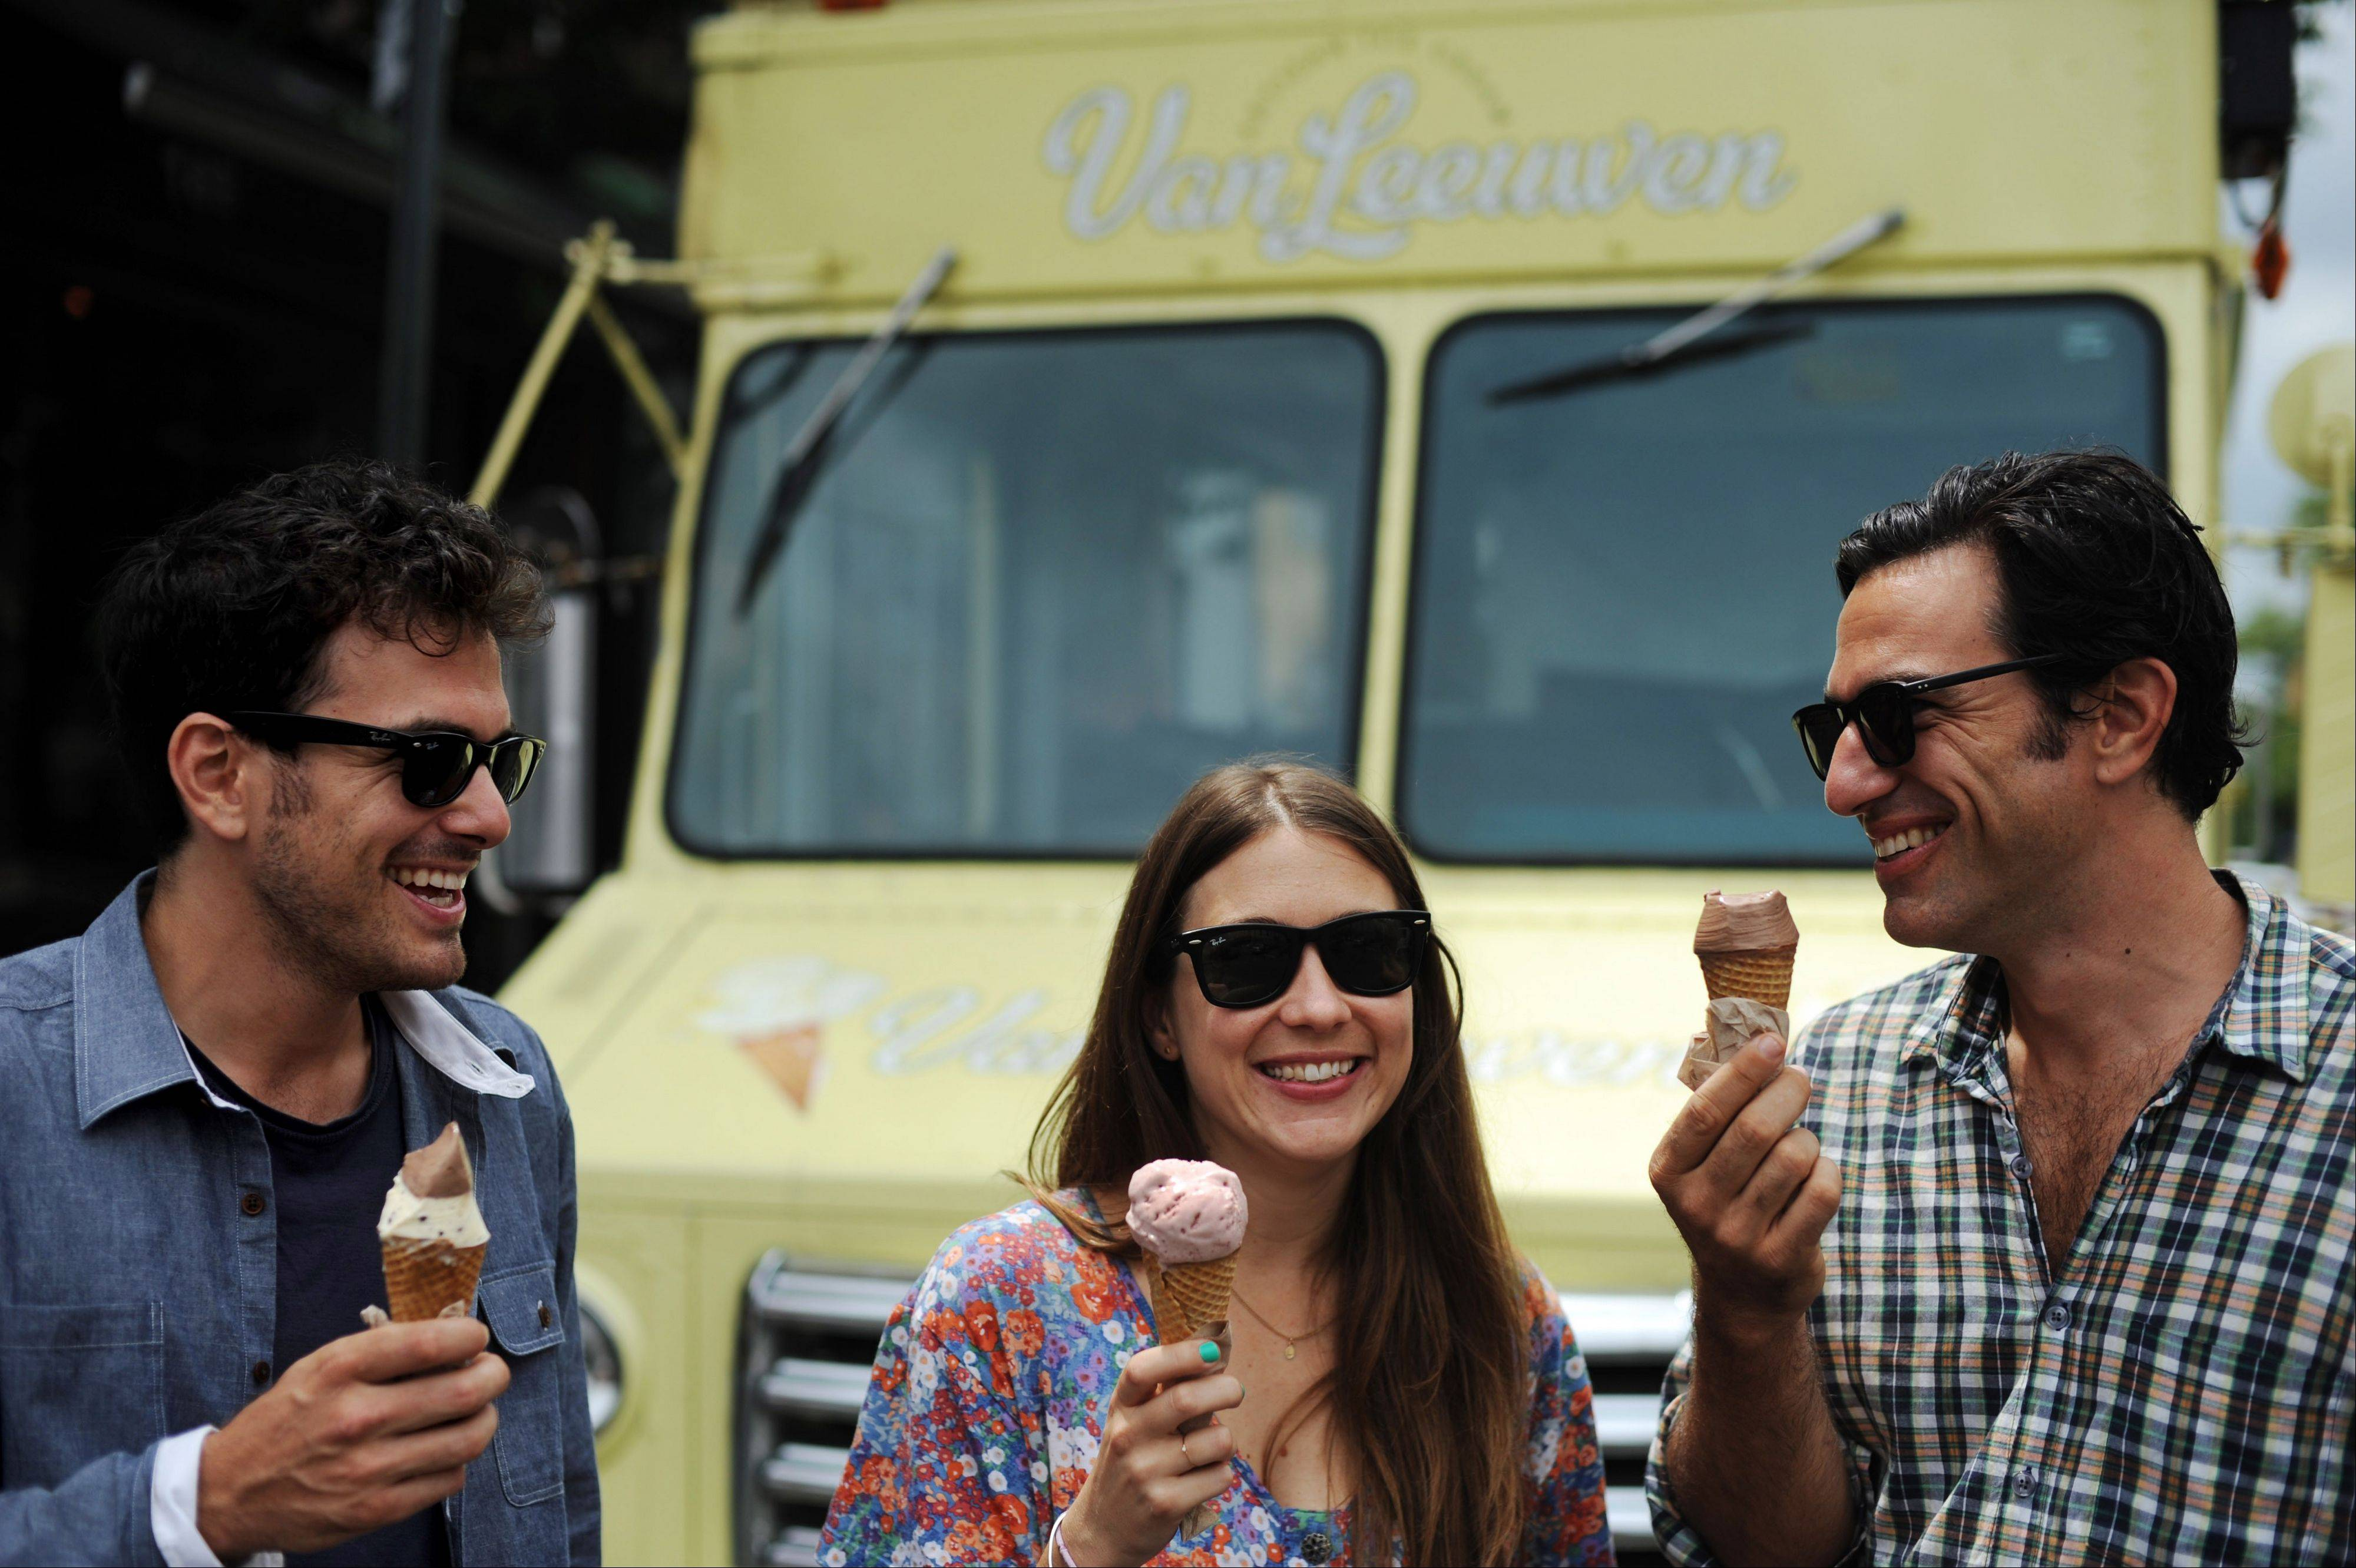 Van Leeuwen Artisan Ice Cream co-owners Ben Van Leeuwen, Laura O'Neill and Pete Van Leeuwen laugh while talking about the origins of their business while eating ice cream in front of one of their trucks on Bedford Avenue in the Williamsburg section of New York's Brooklyn borough.